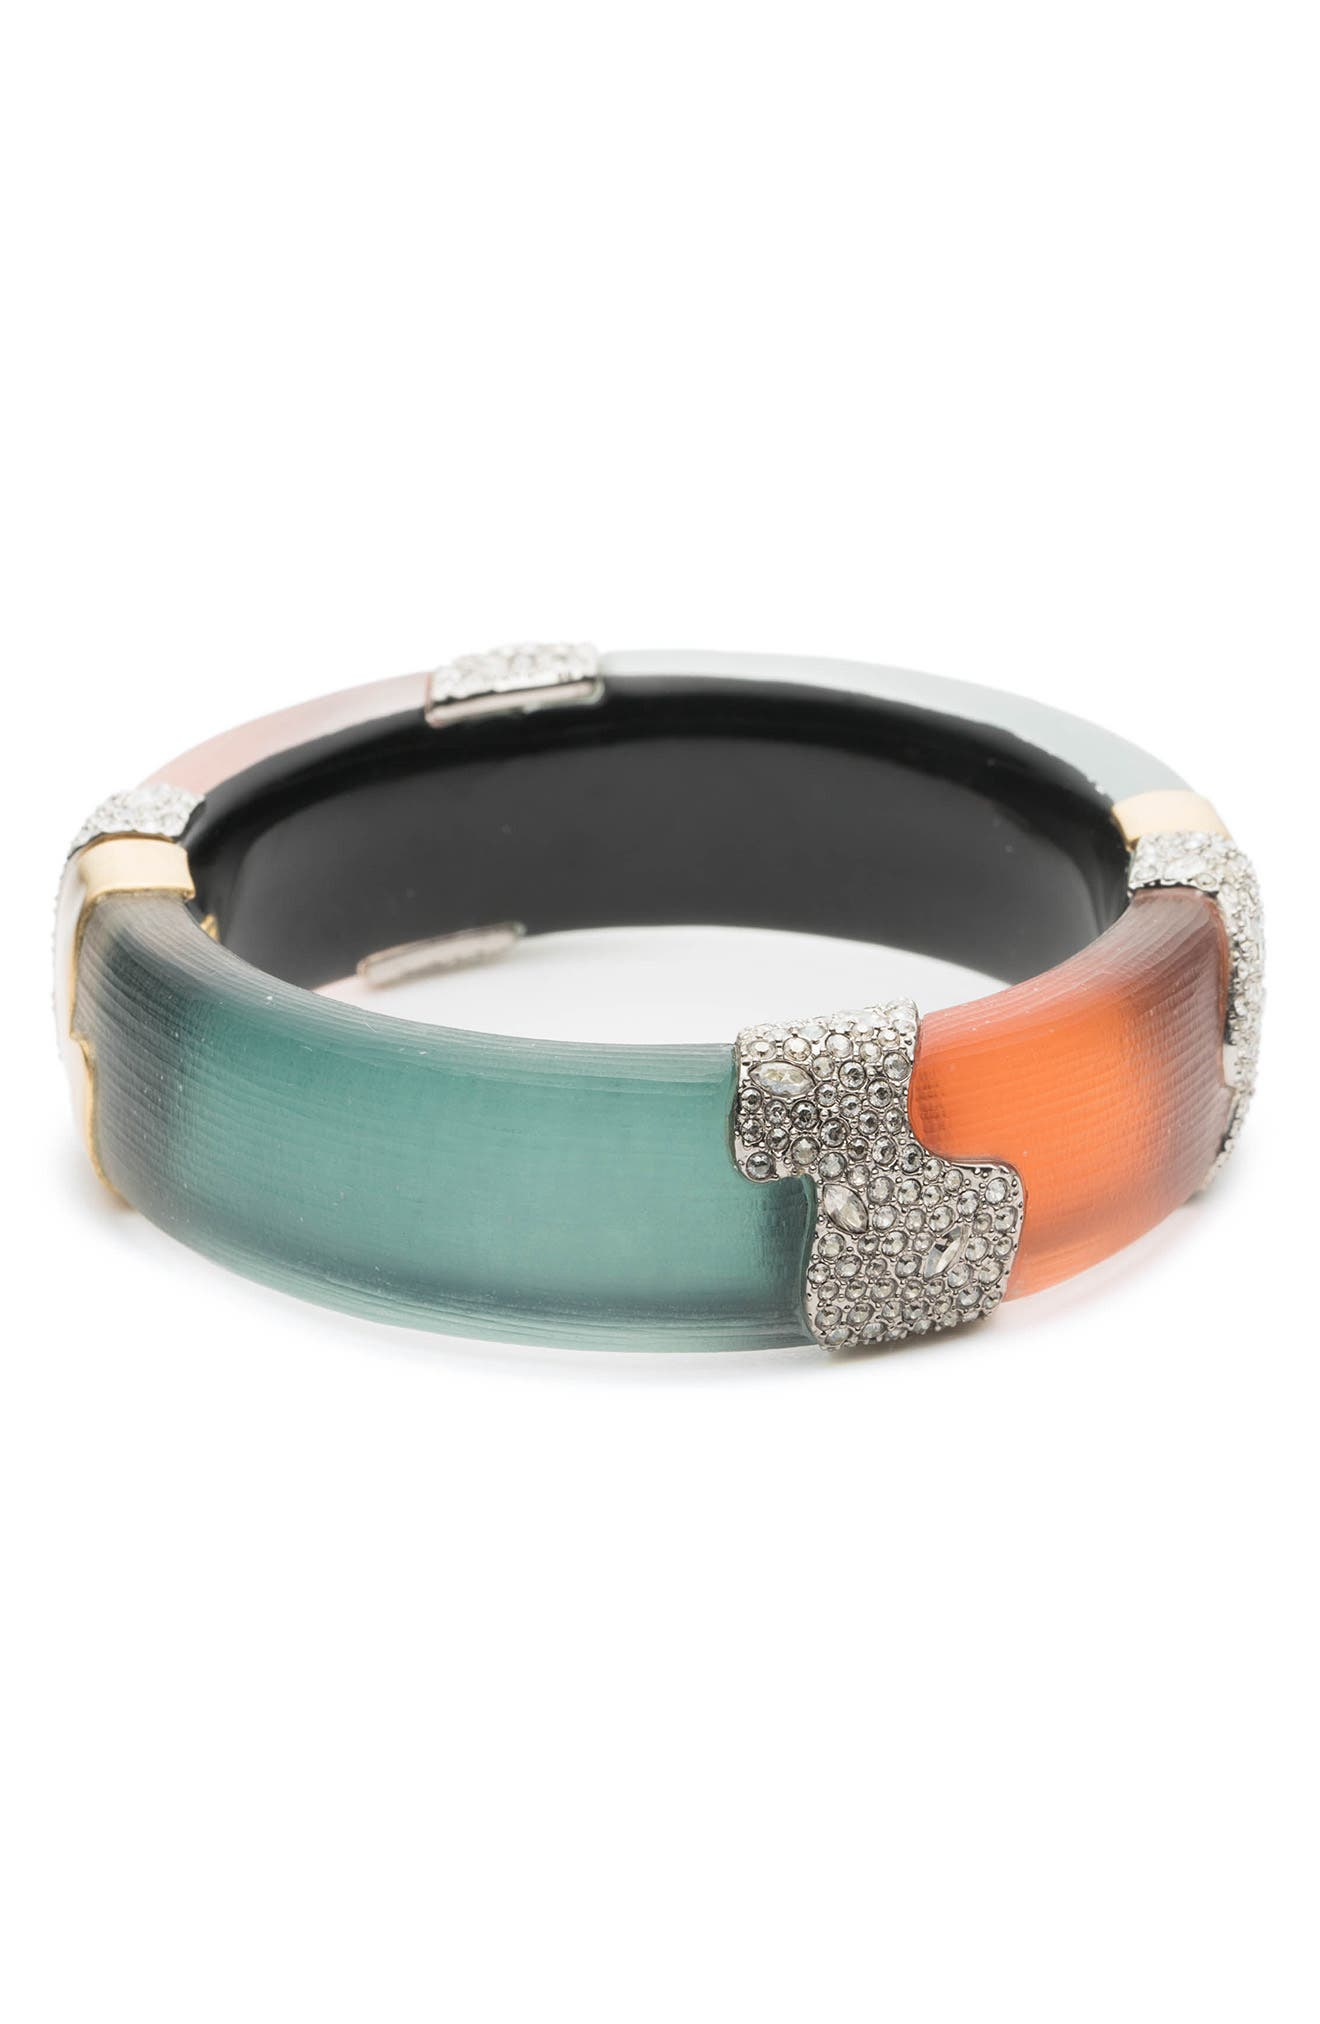 Crystal Encrusted Colorblock Bracelet,                             Main thumbnail 1, color,                             440